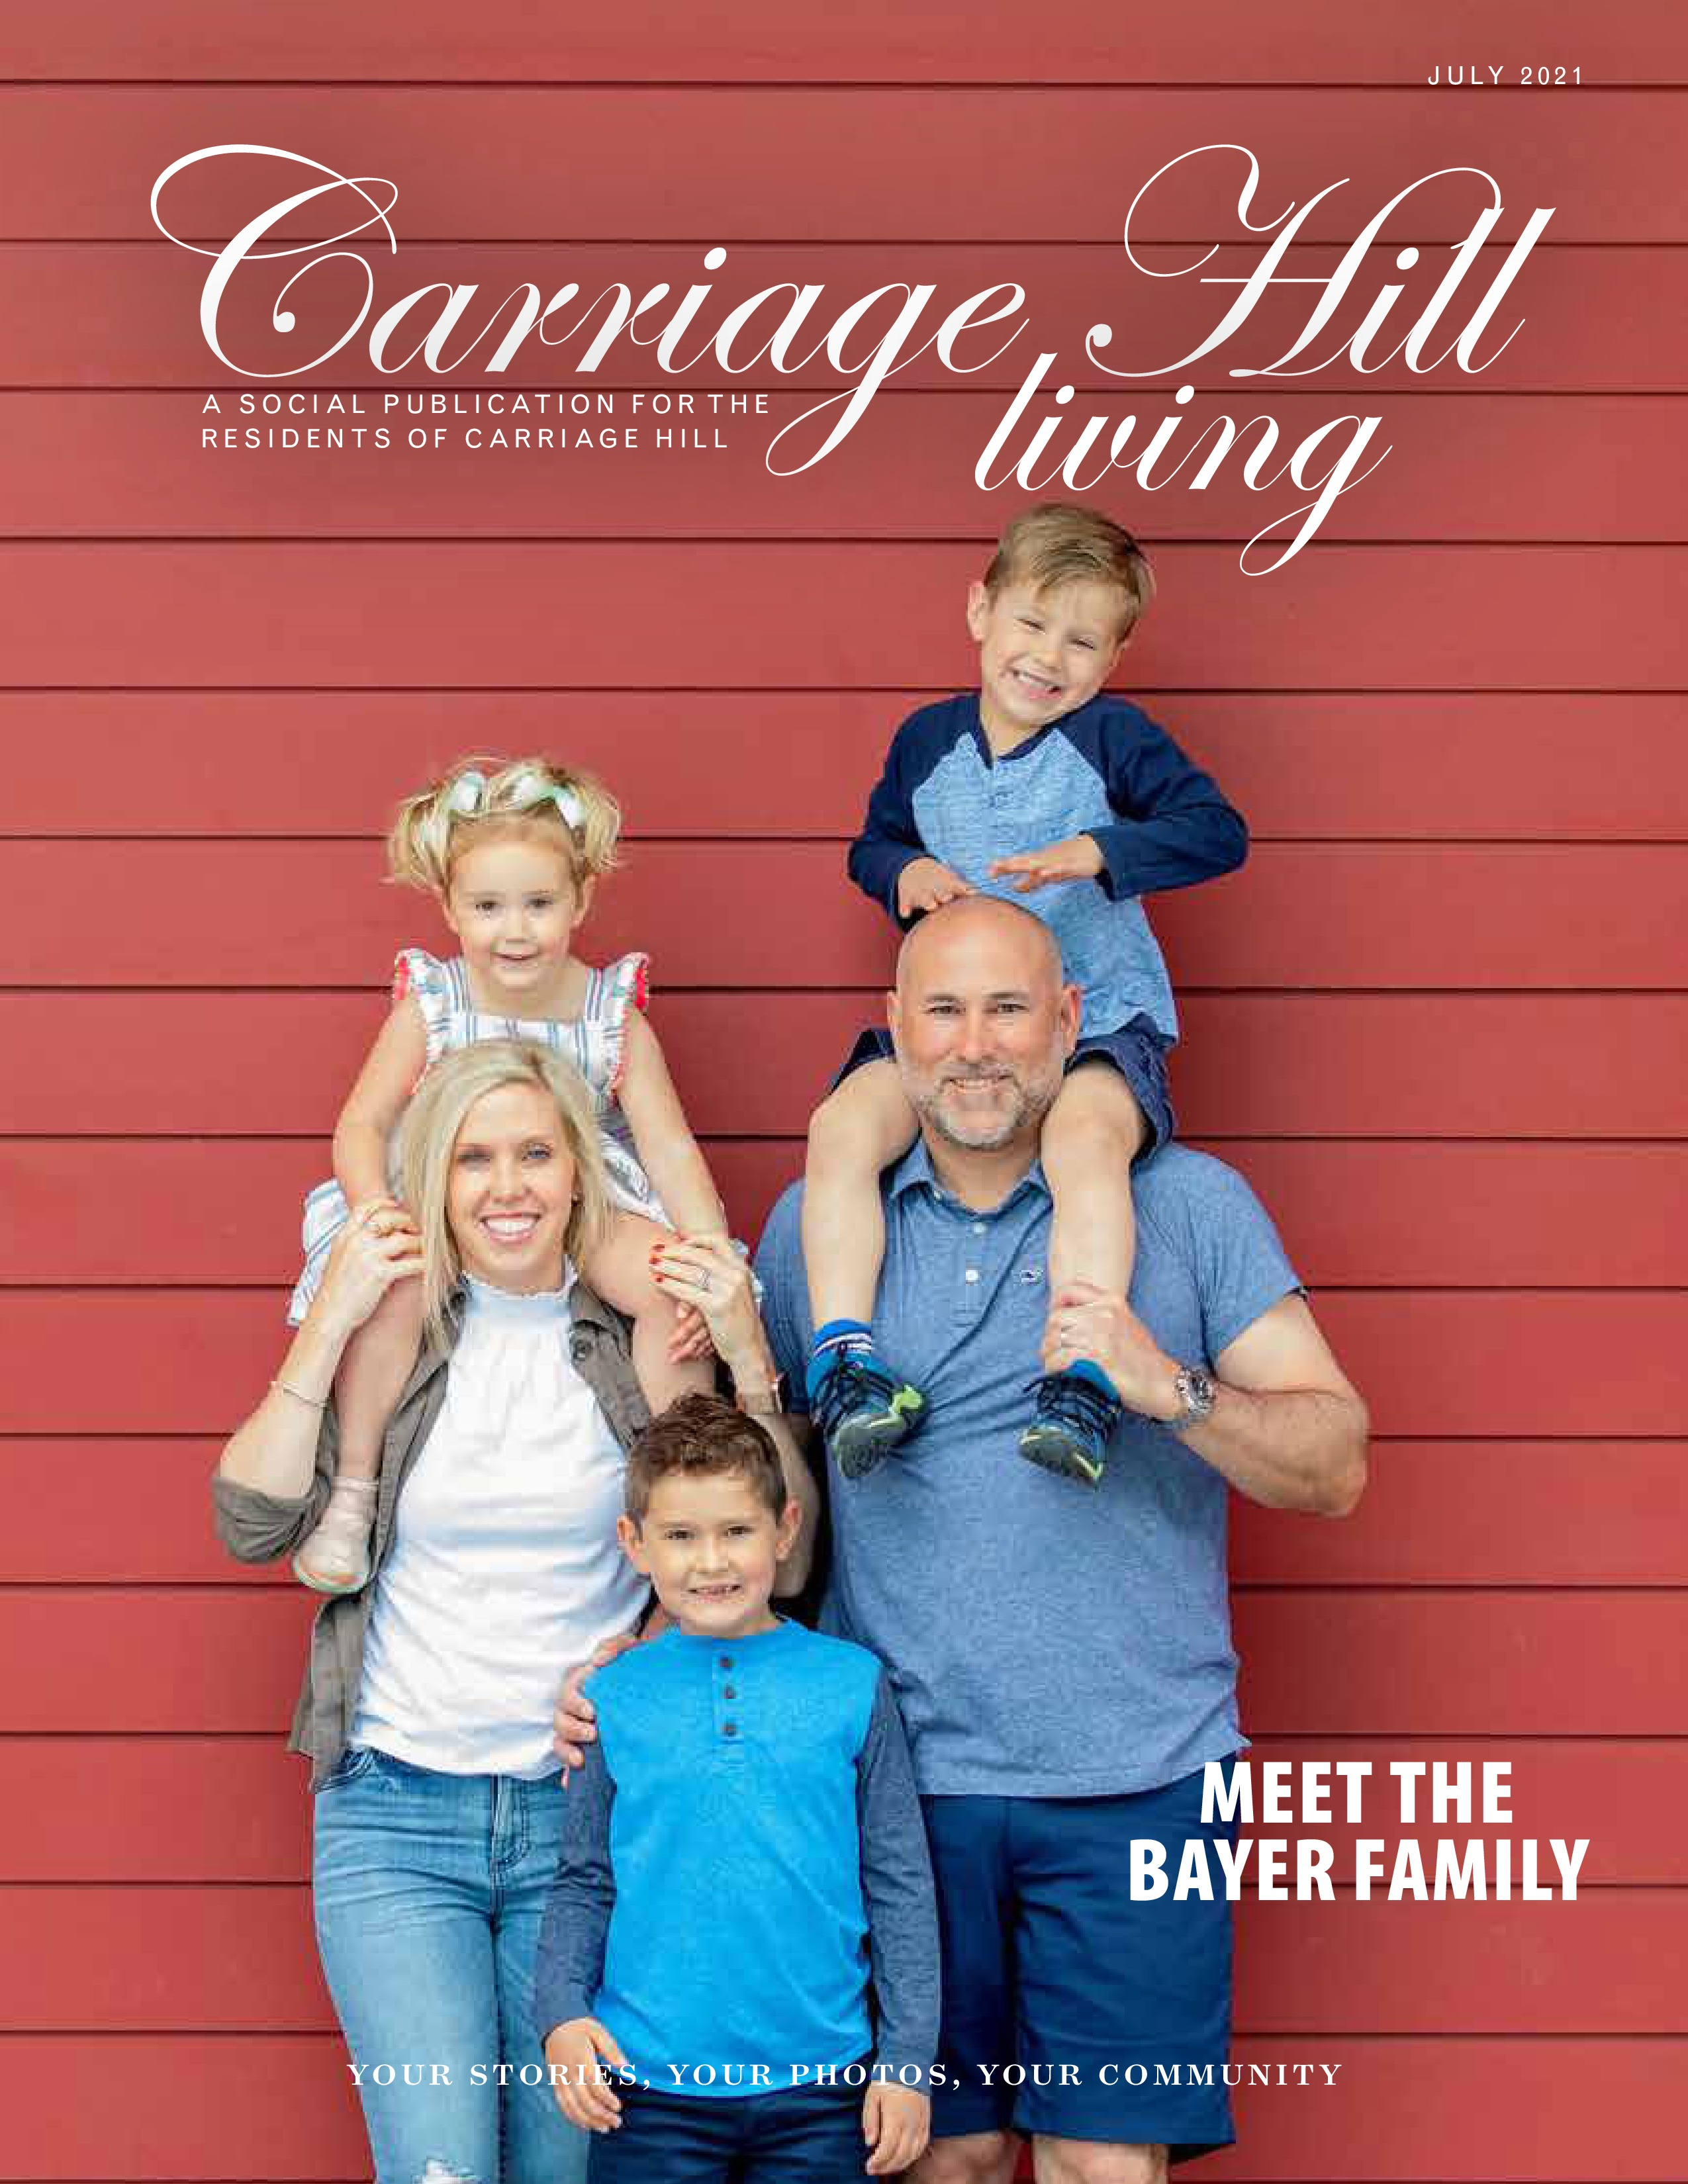 Carriage Hill Living 2021-07-01